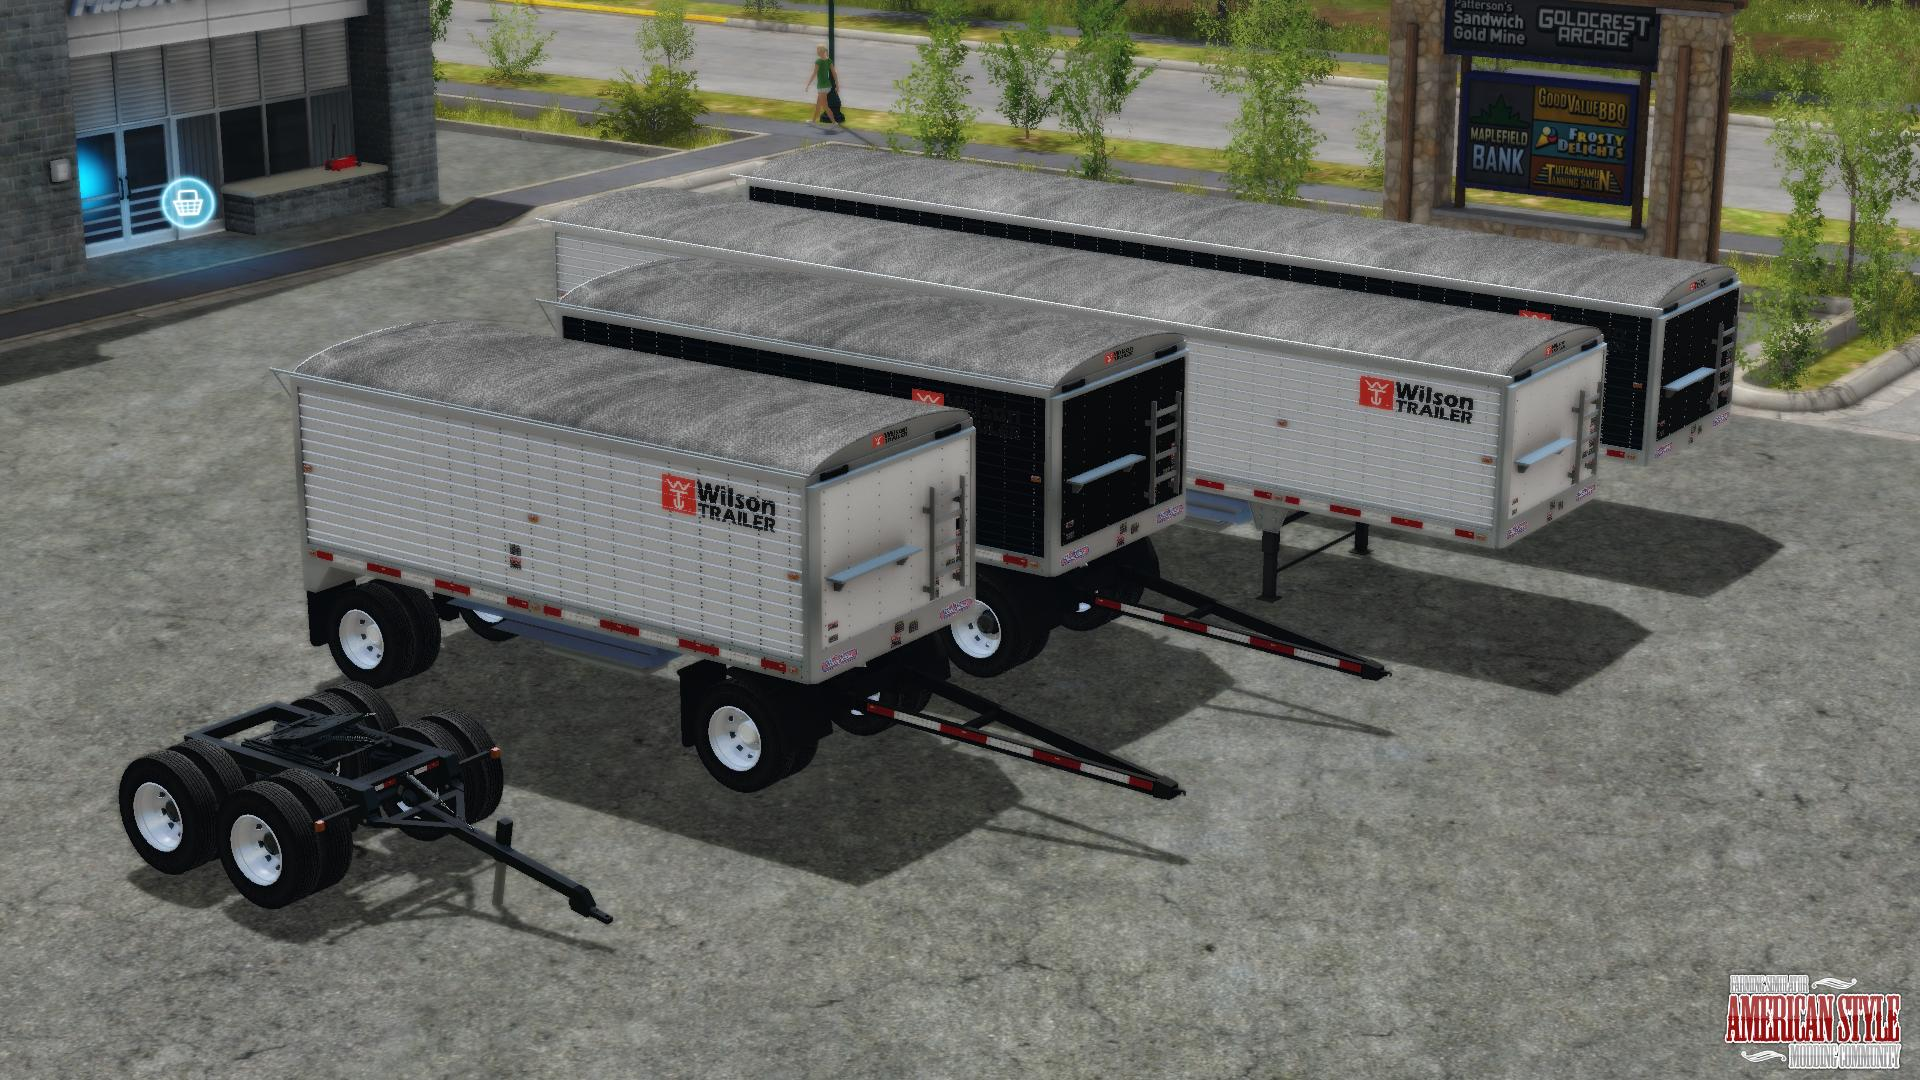 Wilson Grain Trailers V1 1 0 Fs17 additionally Driver Pre Trip Inspection Sheets as well Cdl Classification Licenses additionally Conectores el C3 A9ctricos para remolque seg C3 BAn ISO likewise Agricultural Fuel Trailer jXXJ4bywvNRjfGPSIIVC81rJCv6mHVbDXWe1SFyPTRg. on tractor dump trailers